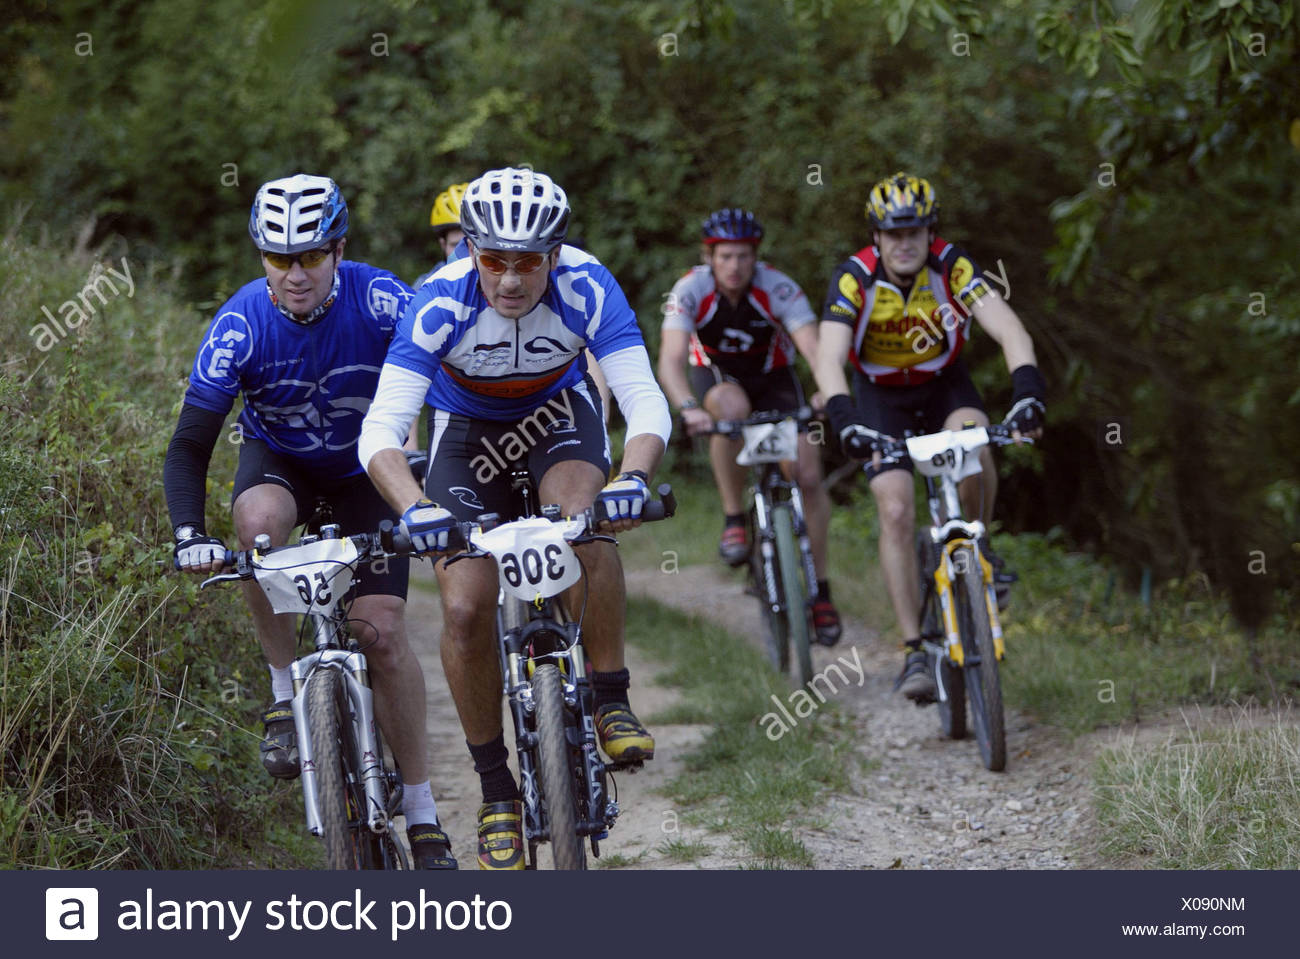 Riding mountain bikes in the forest is gaining popularity Stock Photo